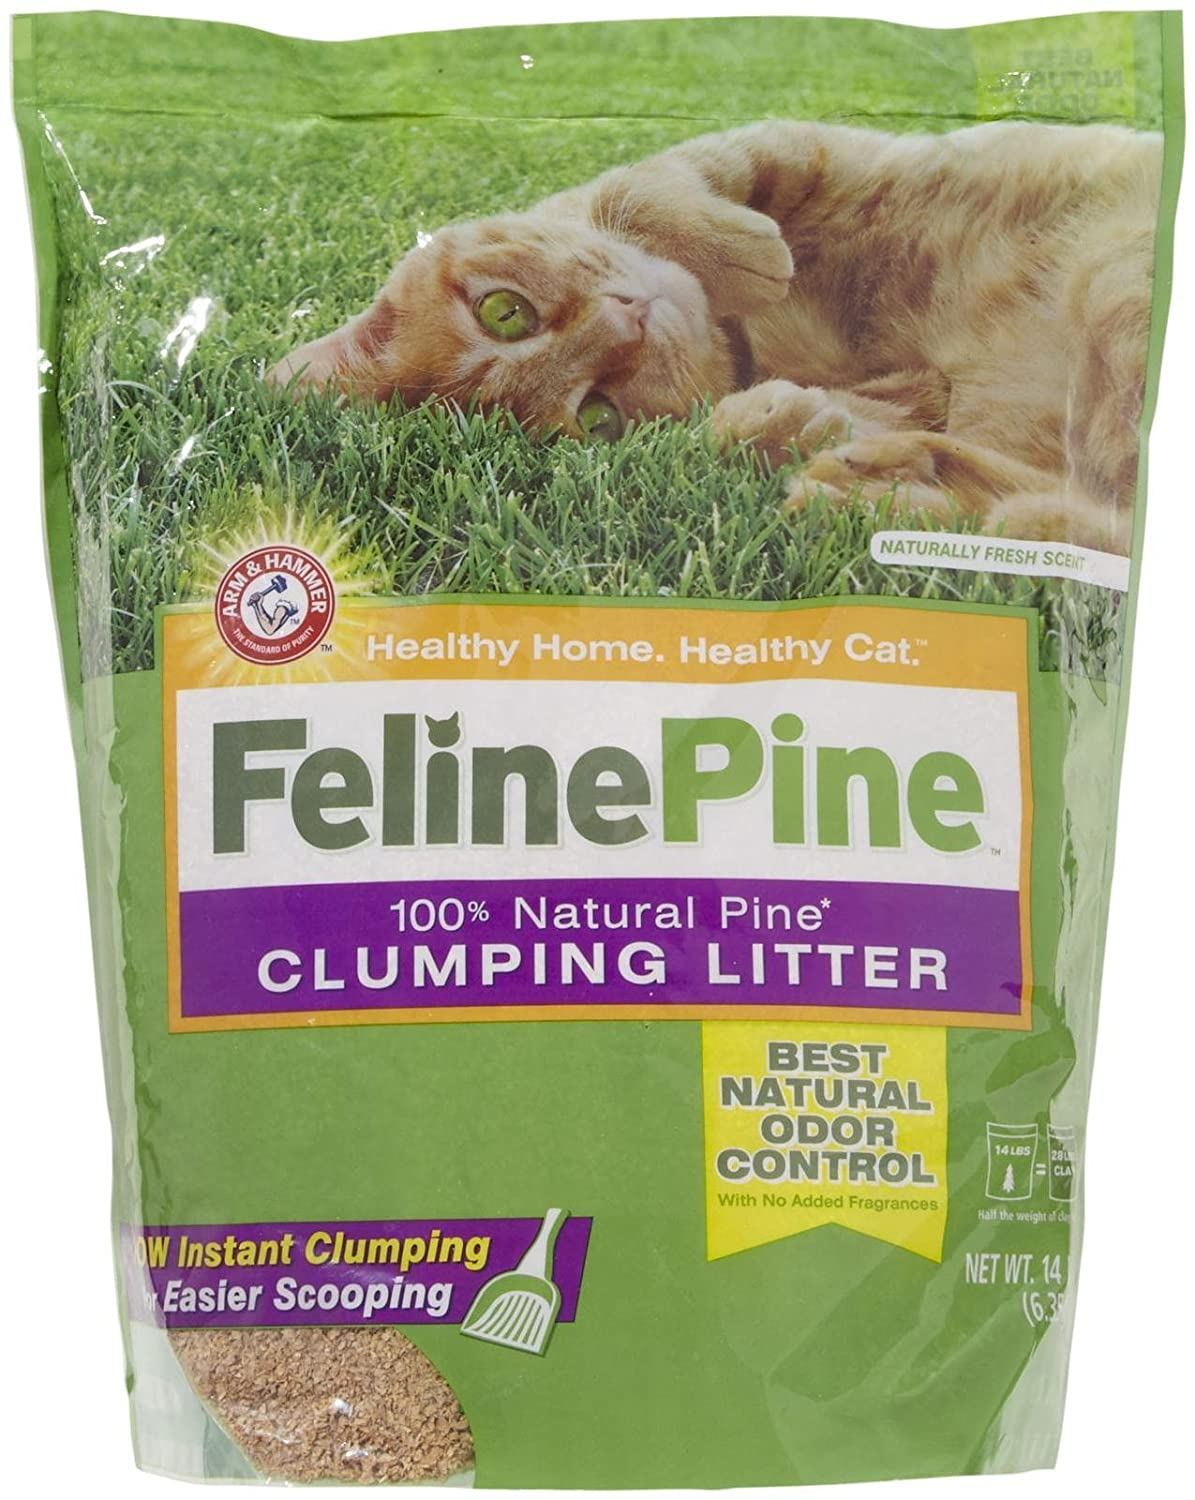 Arm & Hammer Feline Pine Cat Litter 14 Lb Bag